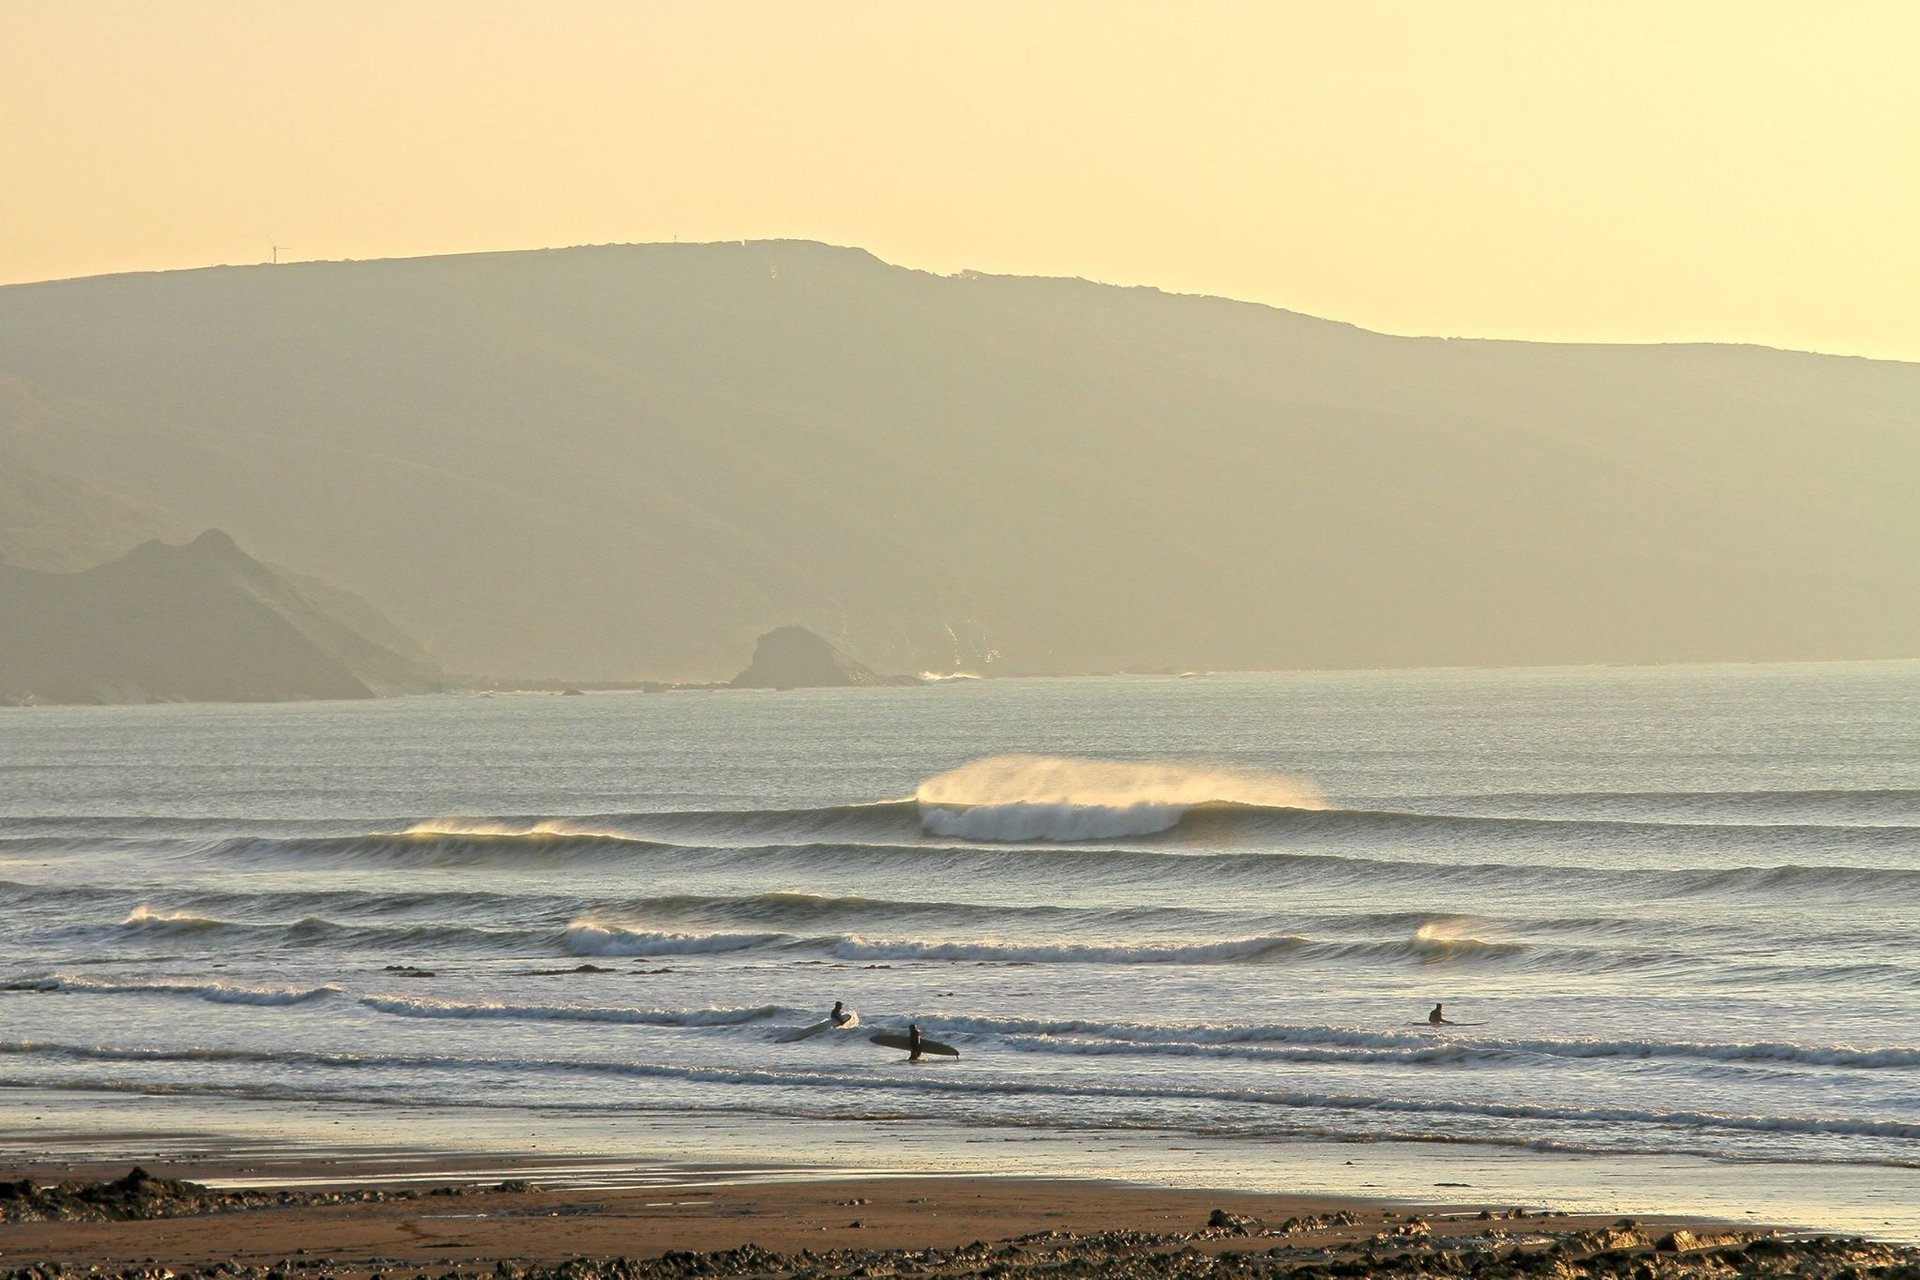 Dustin Waters's photo of Widemouth Bay